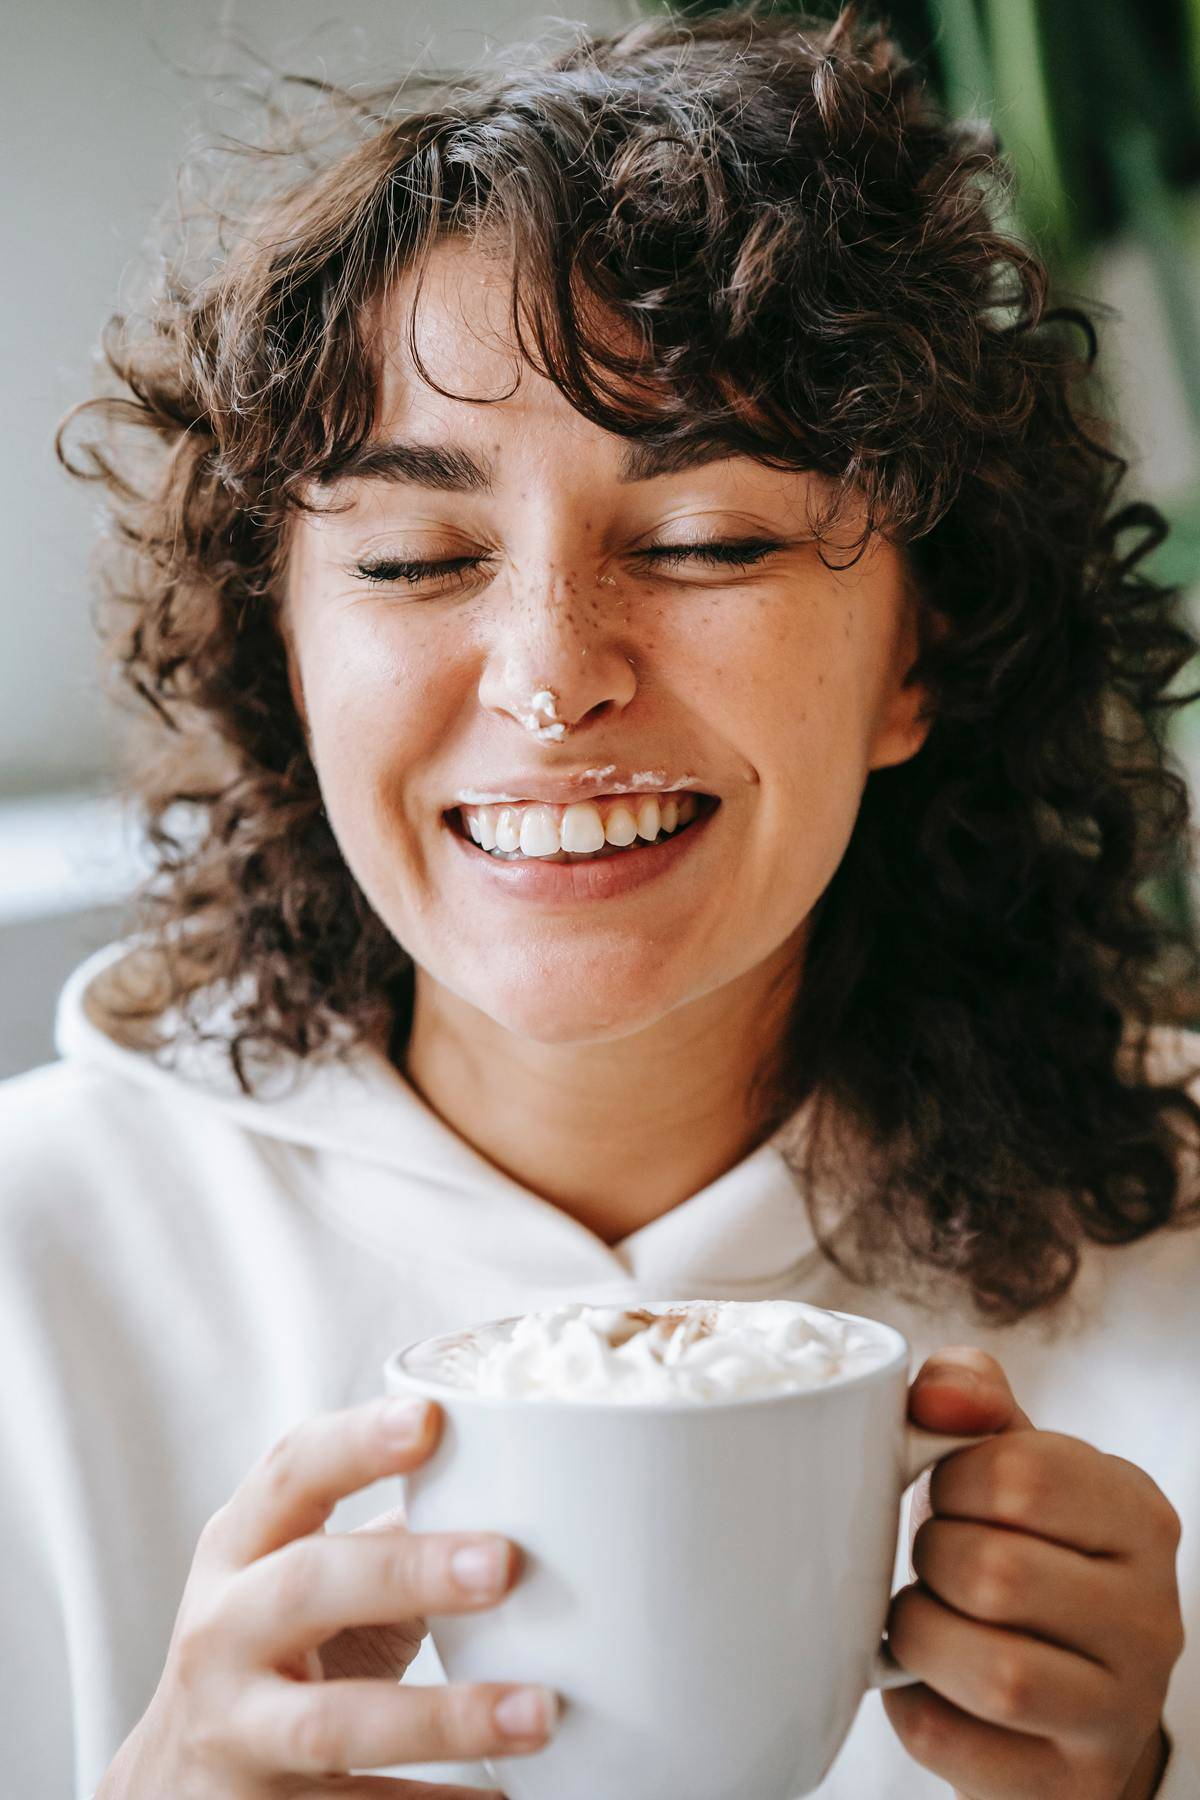 a woman holding a coffee cup while smiling with whipped cream on her nose